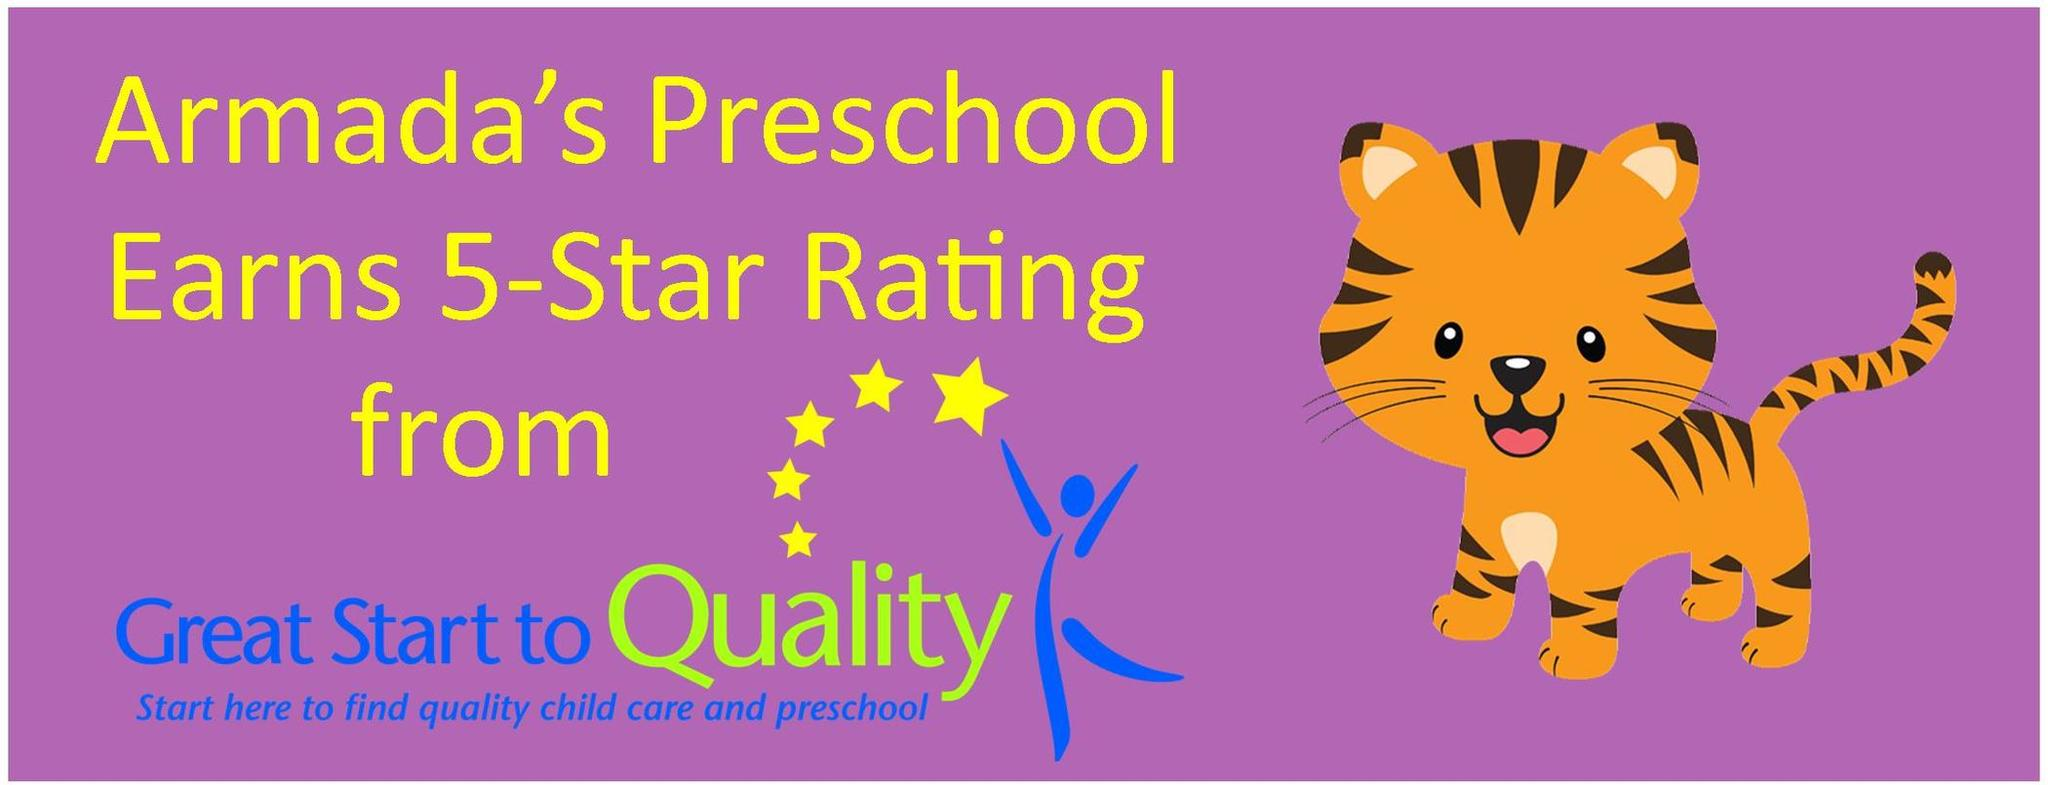 Armada's Preschool Earns Prestigious 5 Star Rating from Great Start to Quality